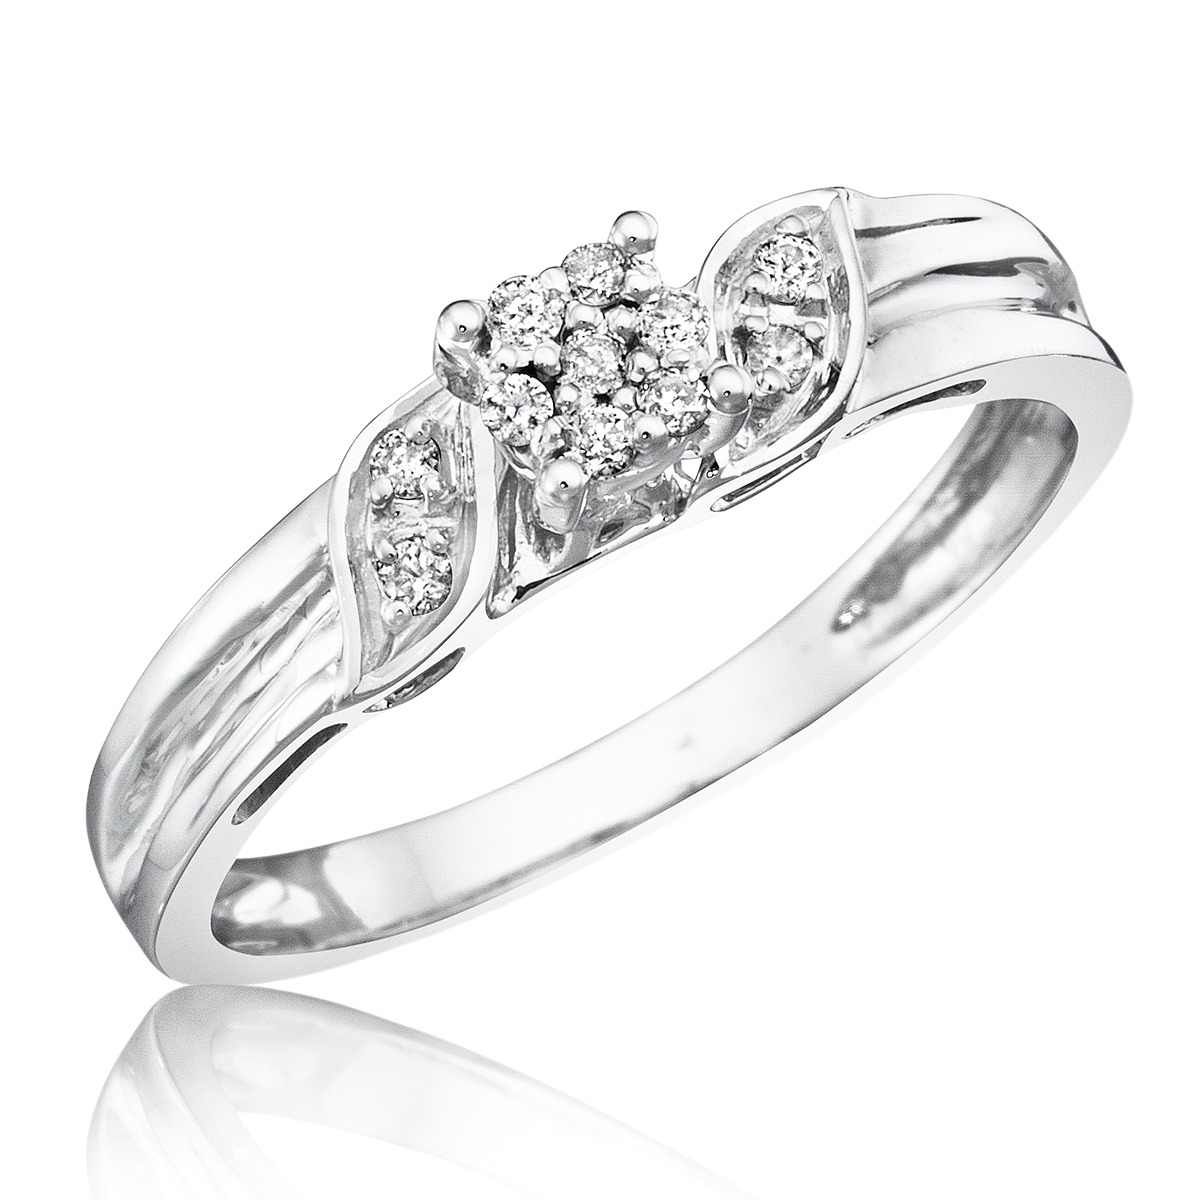 White Gold Wedding Rings For Women With Diamonds 1_1_10_Carat_T.W._Diam...